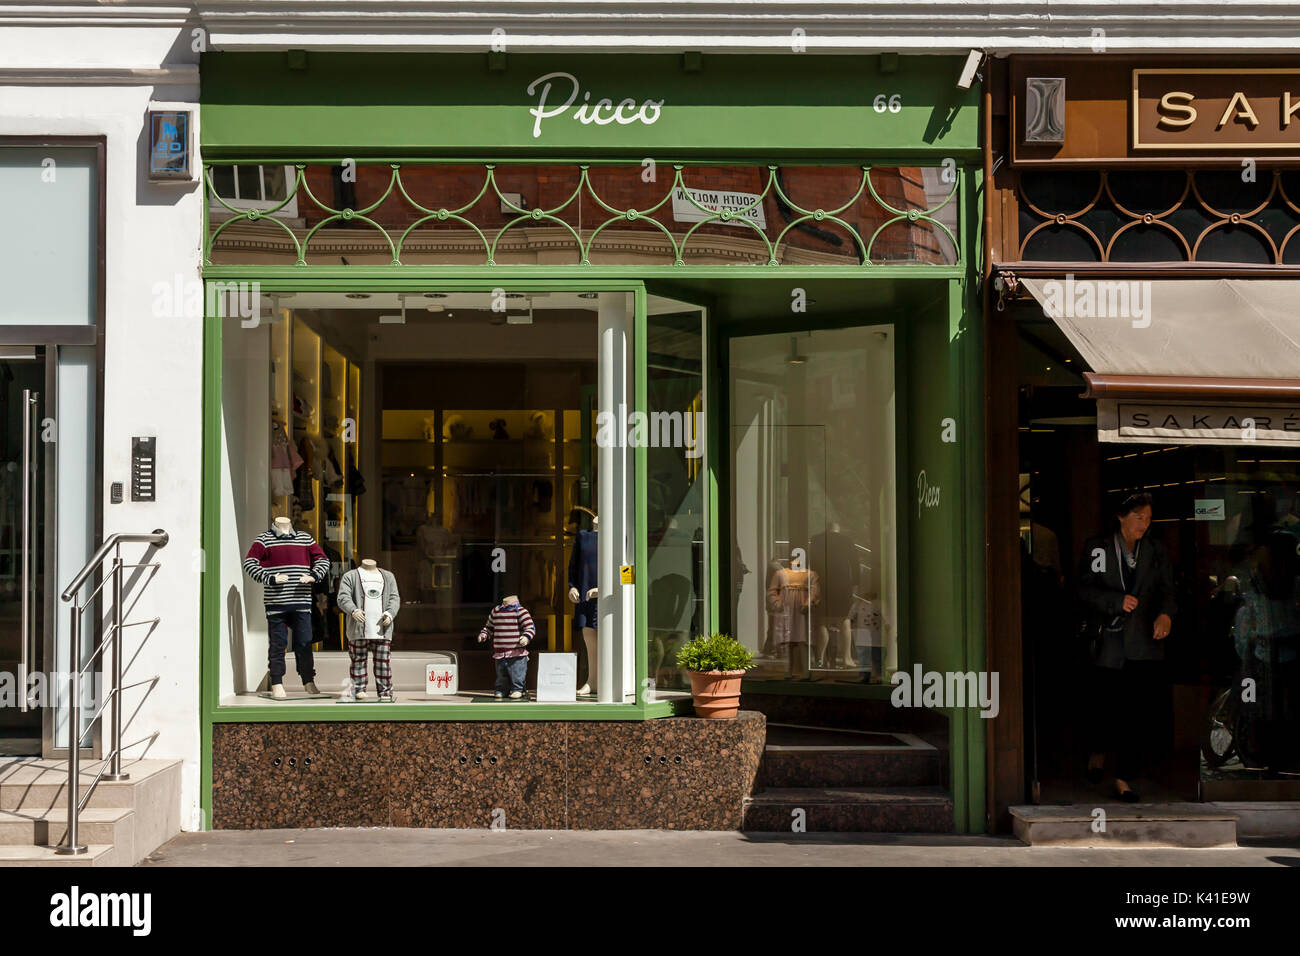 Picco Childrens Clothing Store, South Molton Street, London, UK - Stock Image